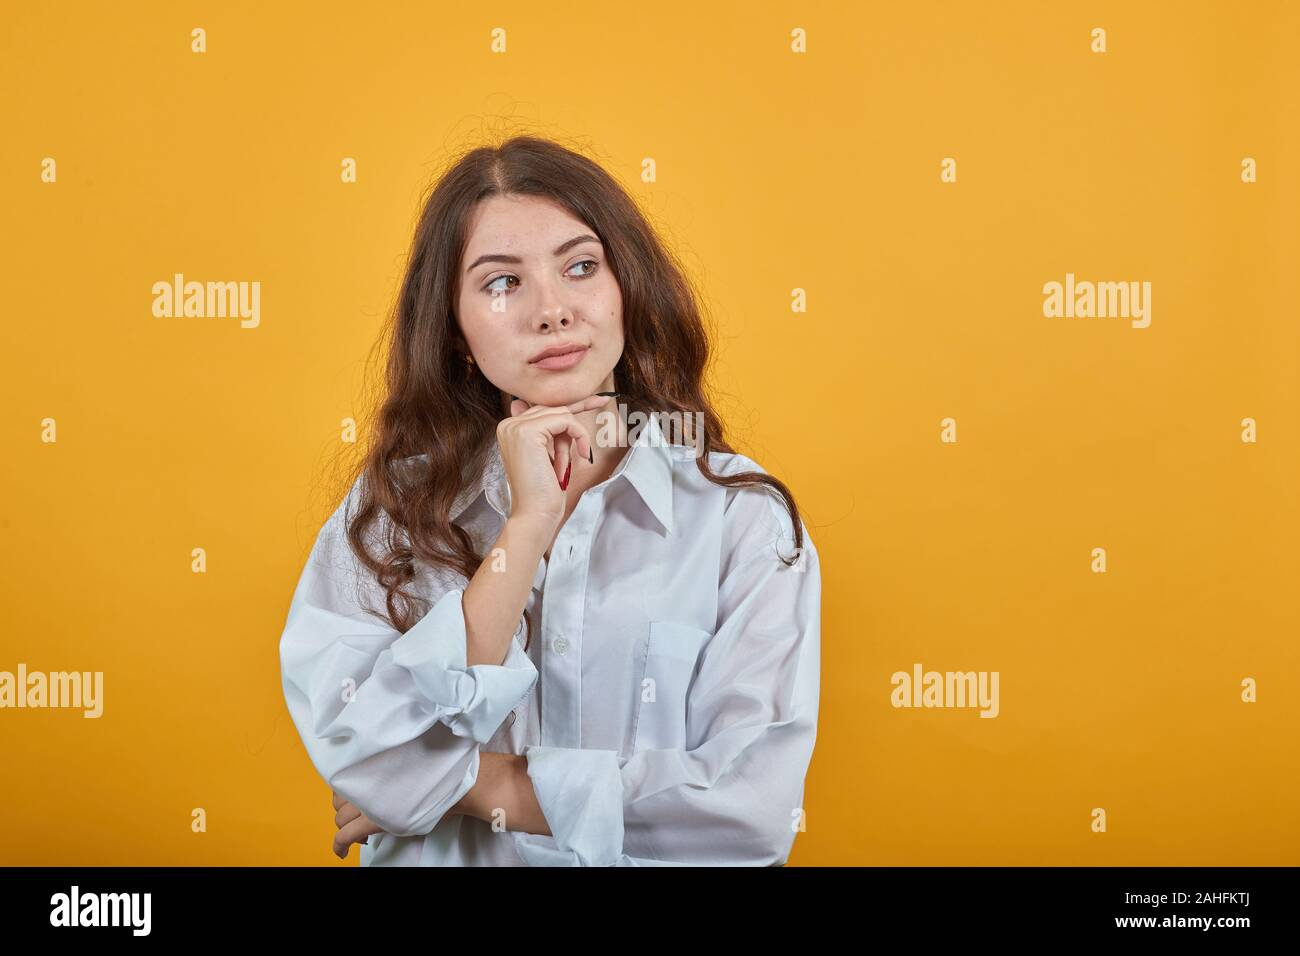 Focused young woman keeping hands on chin, looking aside, having nice haircut Stock Photo